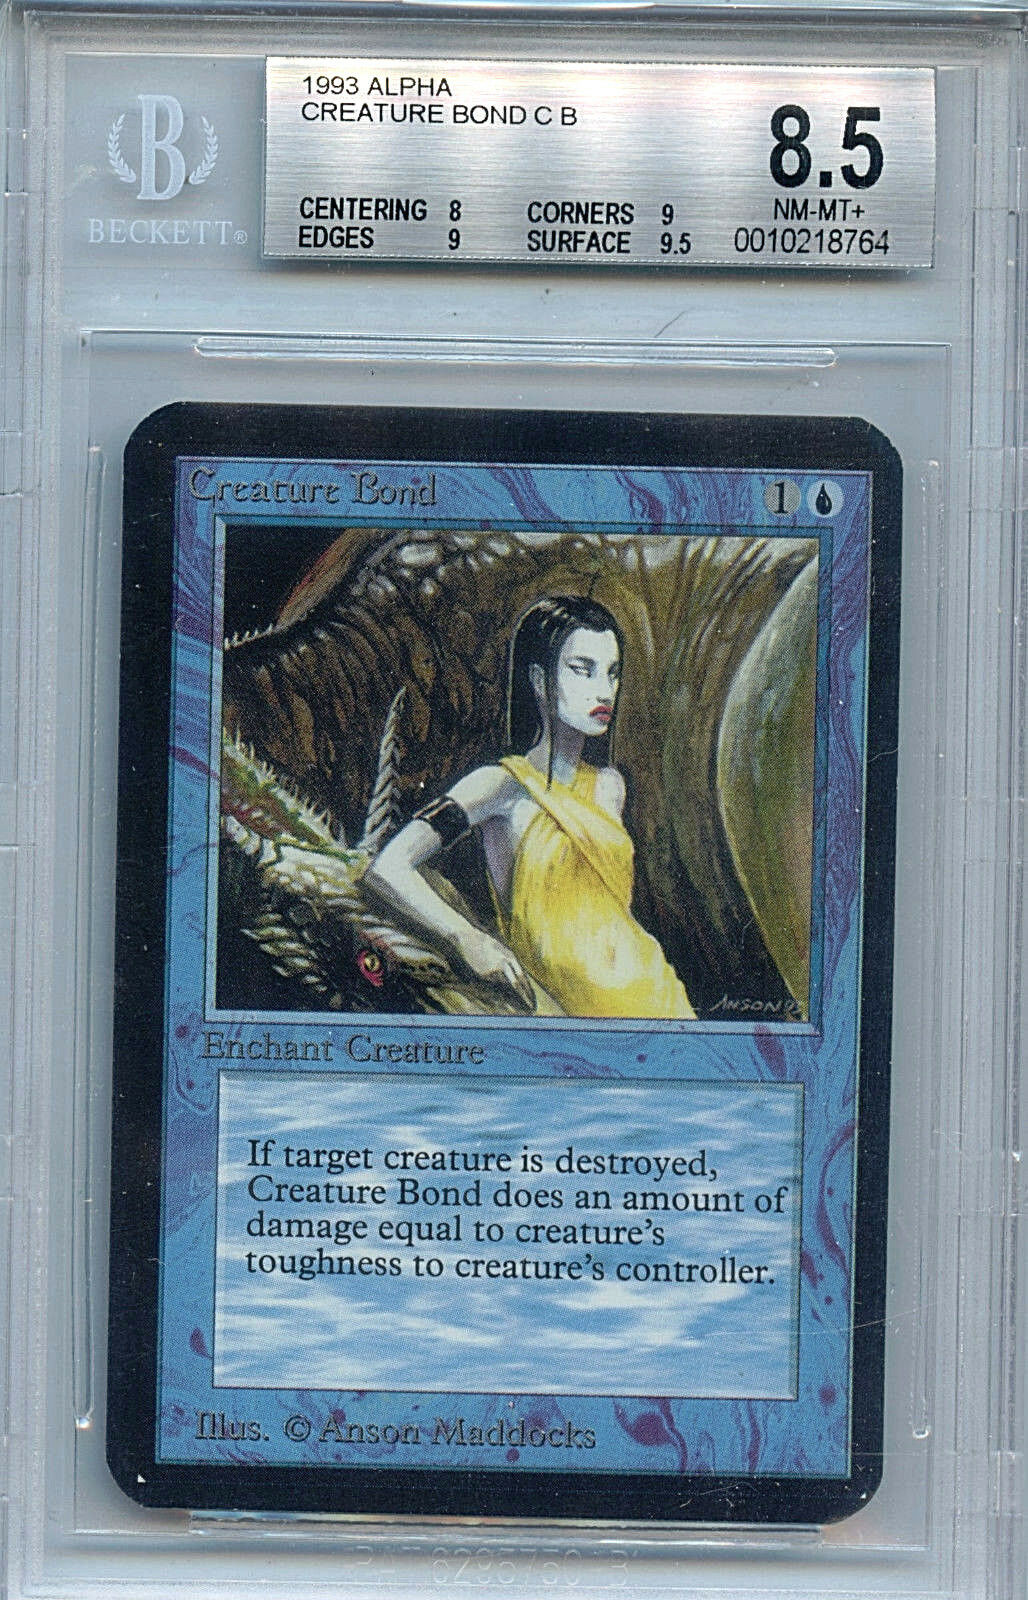 MTG Alpha Creature Bond BGS 8.5 NM-MT+  card Magic the Gathering WOTC